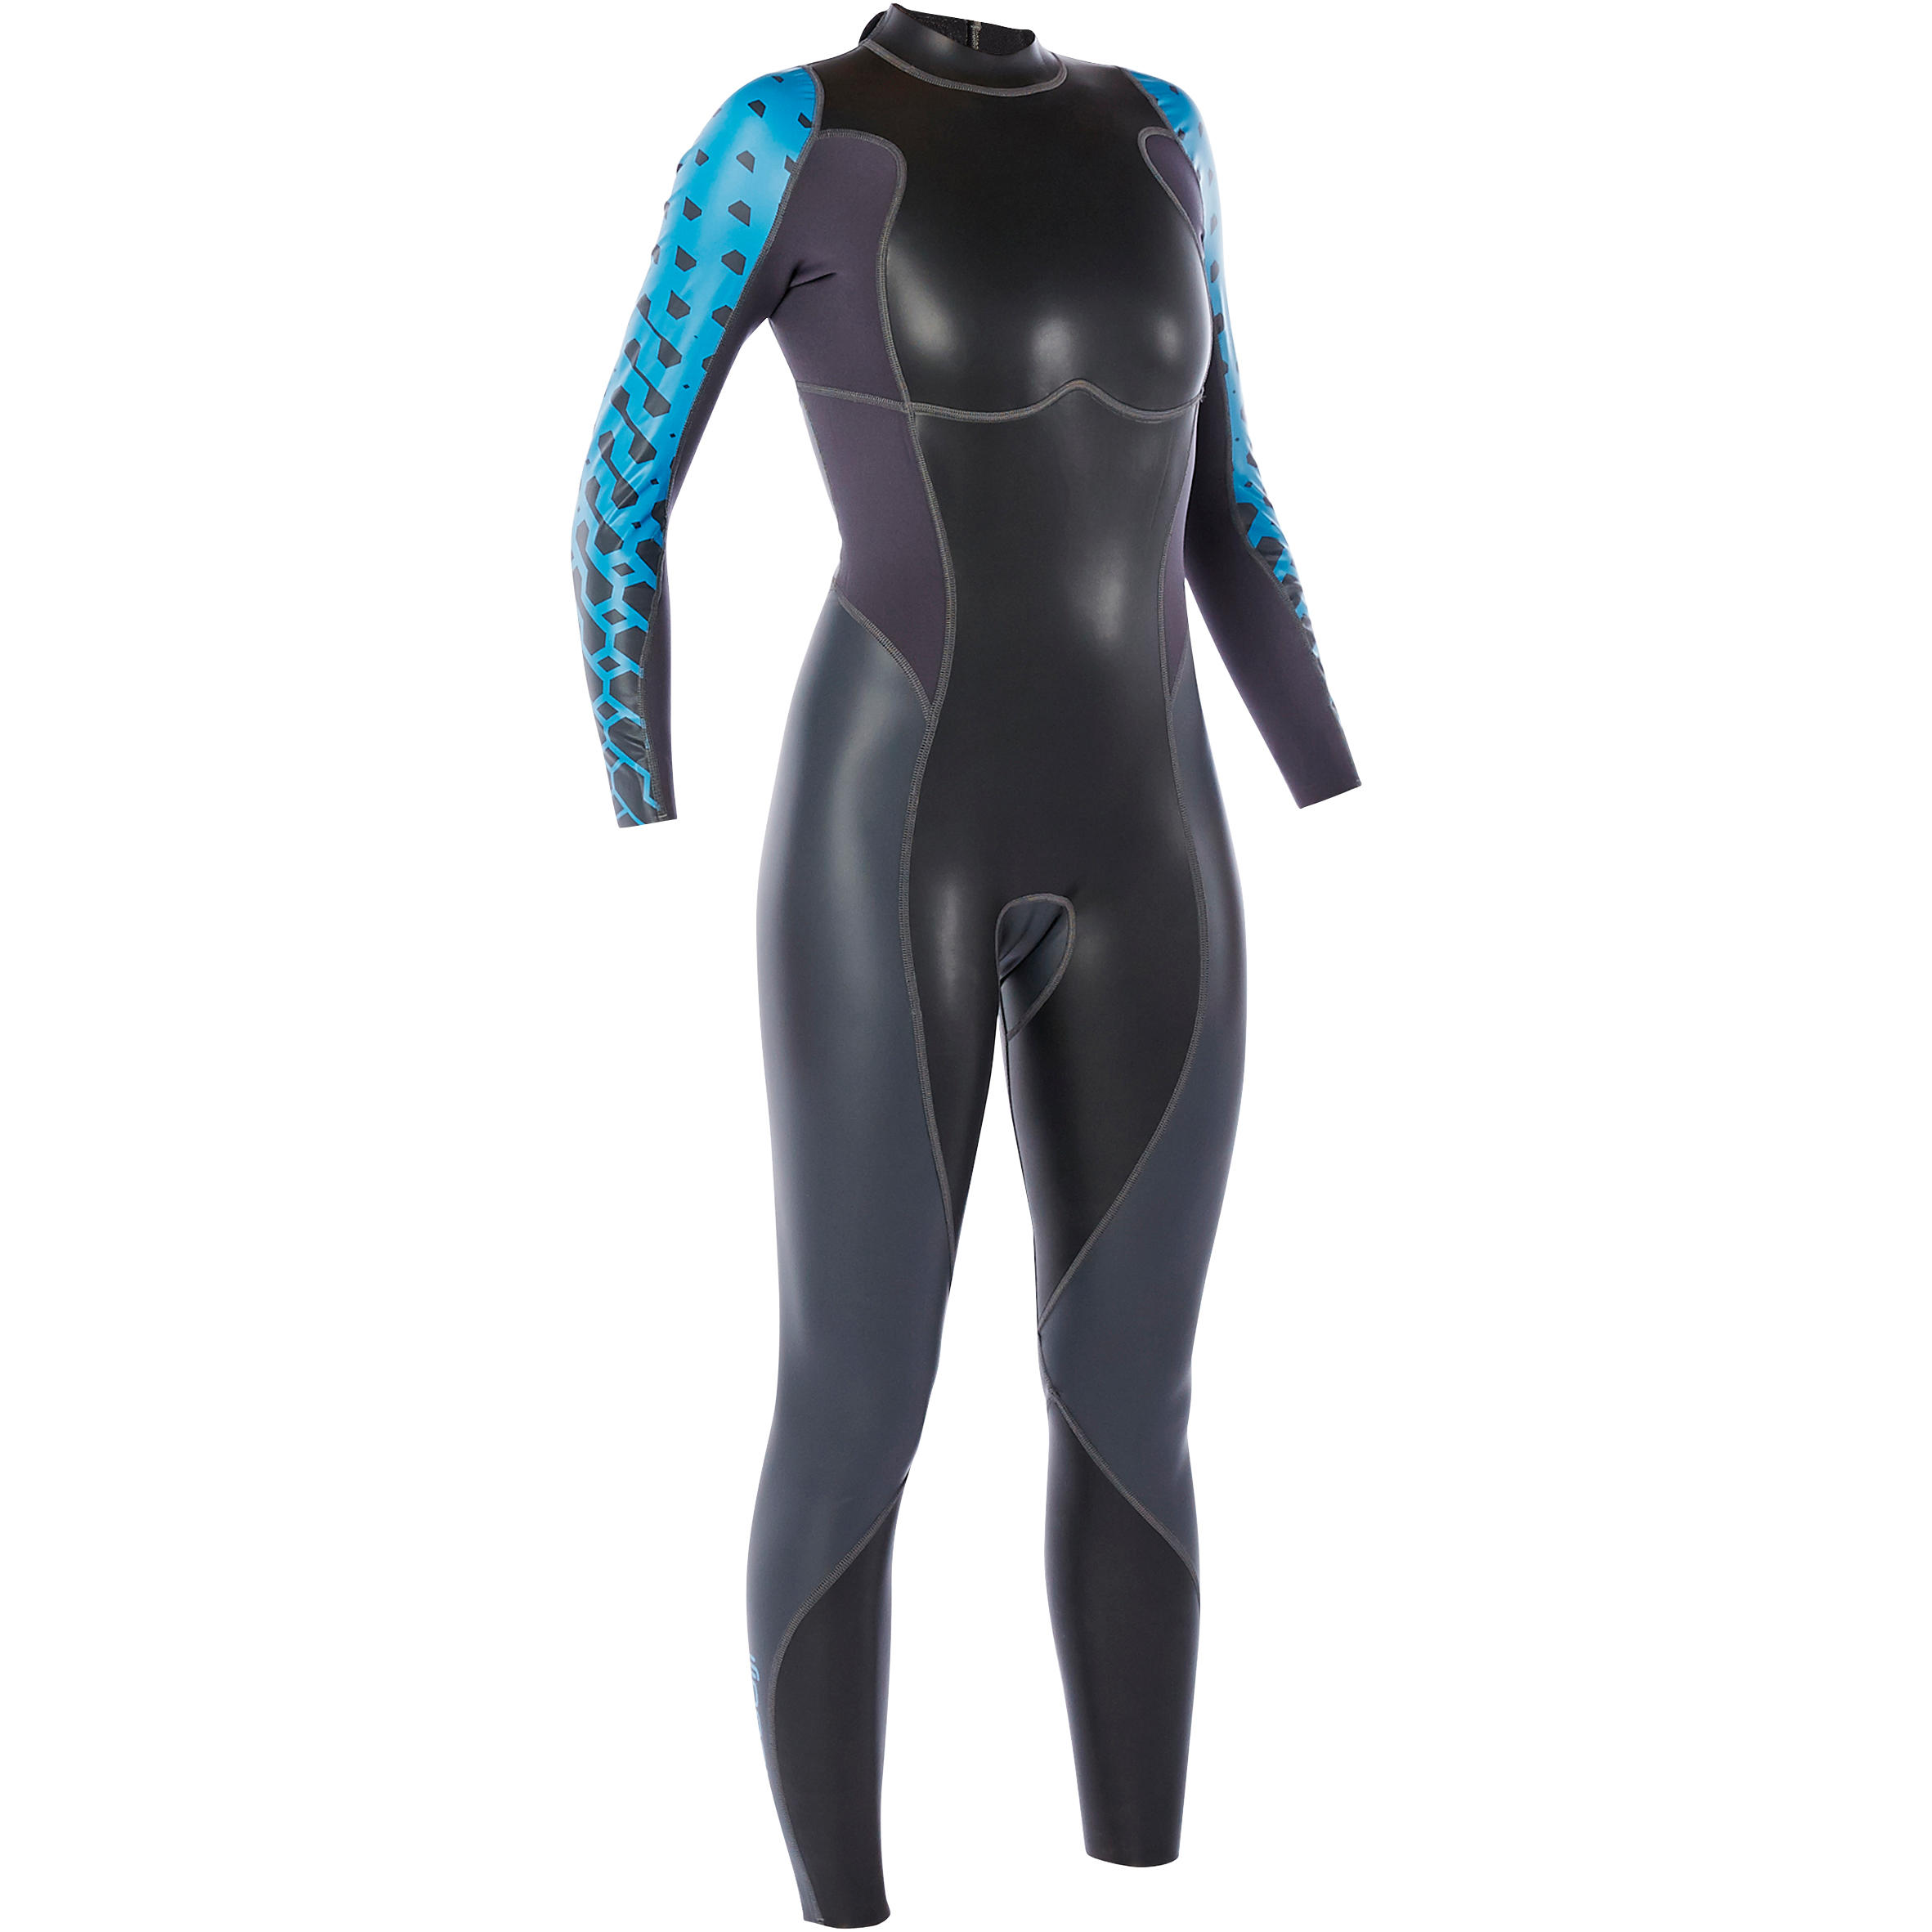 OWS100 Women's 1/0 mm Temperate Water Neoprene Swimming Wetsuit